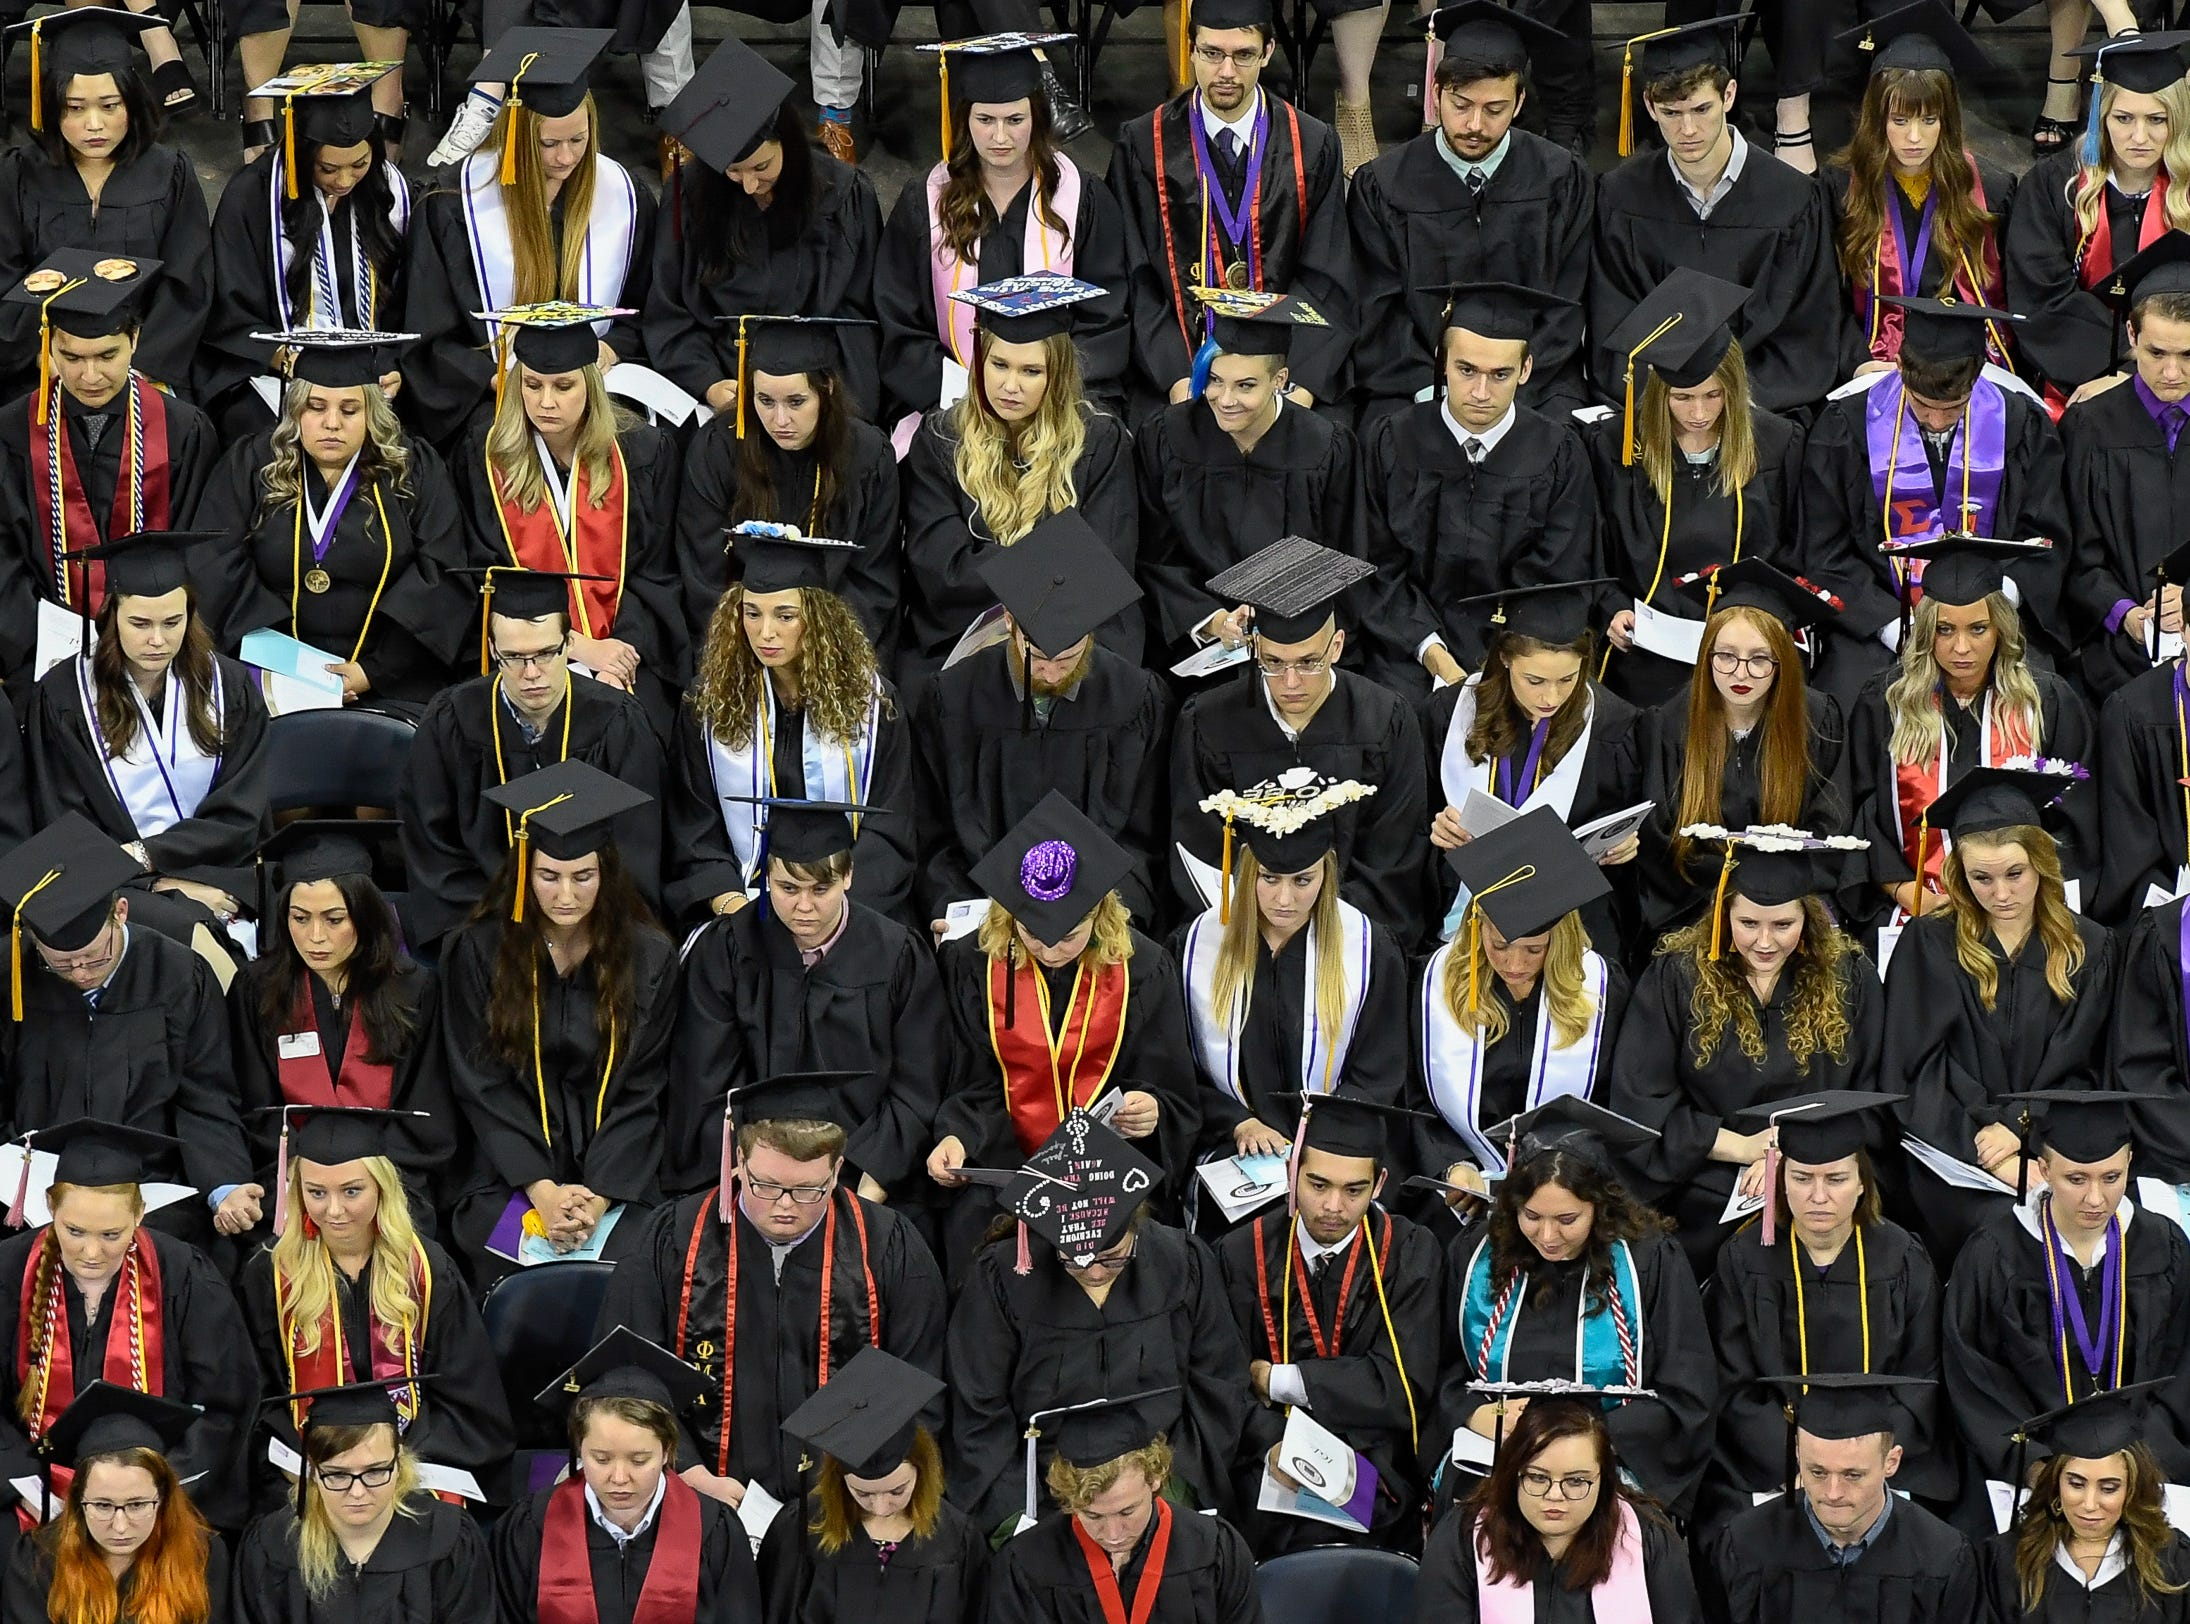 Graduates at the University of Evansville's 161st commencement ceremony held at the Ford Center Saturday, May 11, 2019.